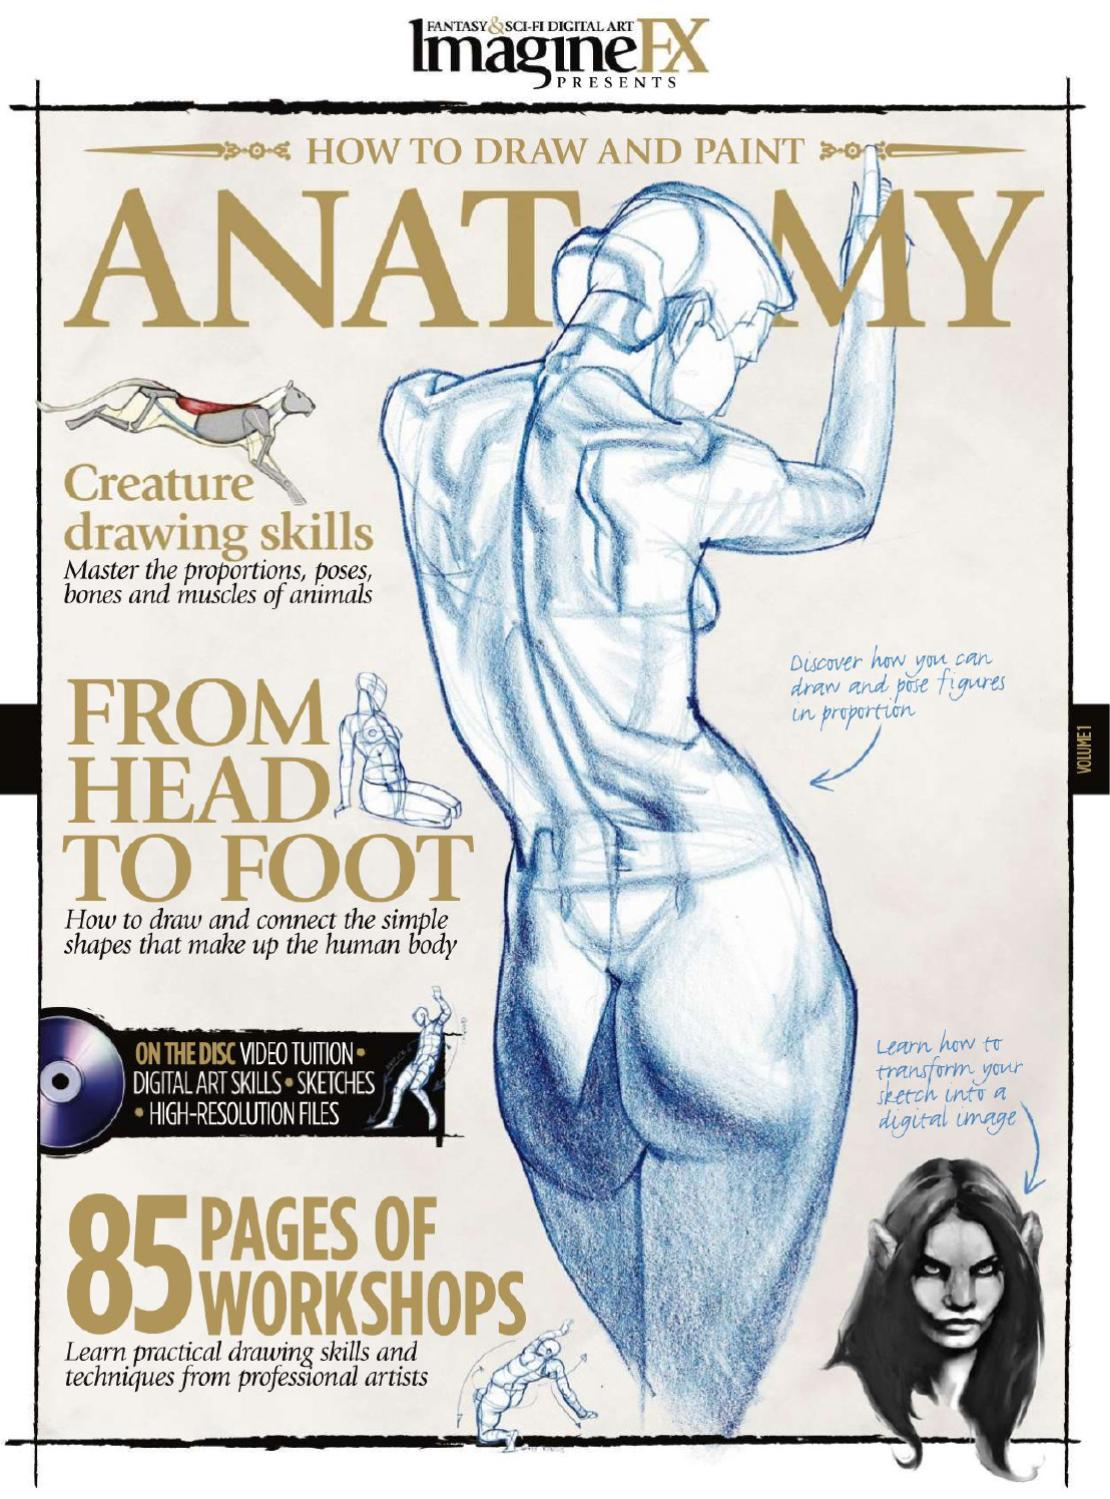 Imaginefx Presents How To Draw And Paint Anatomy By Vinicius